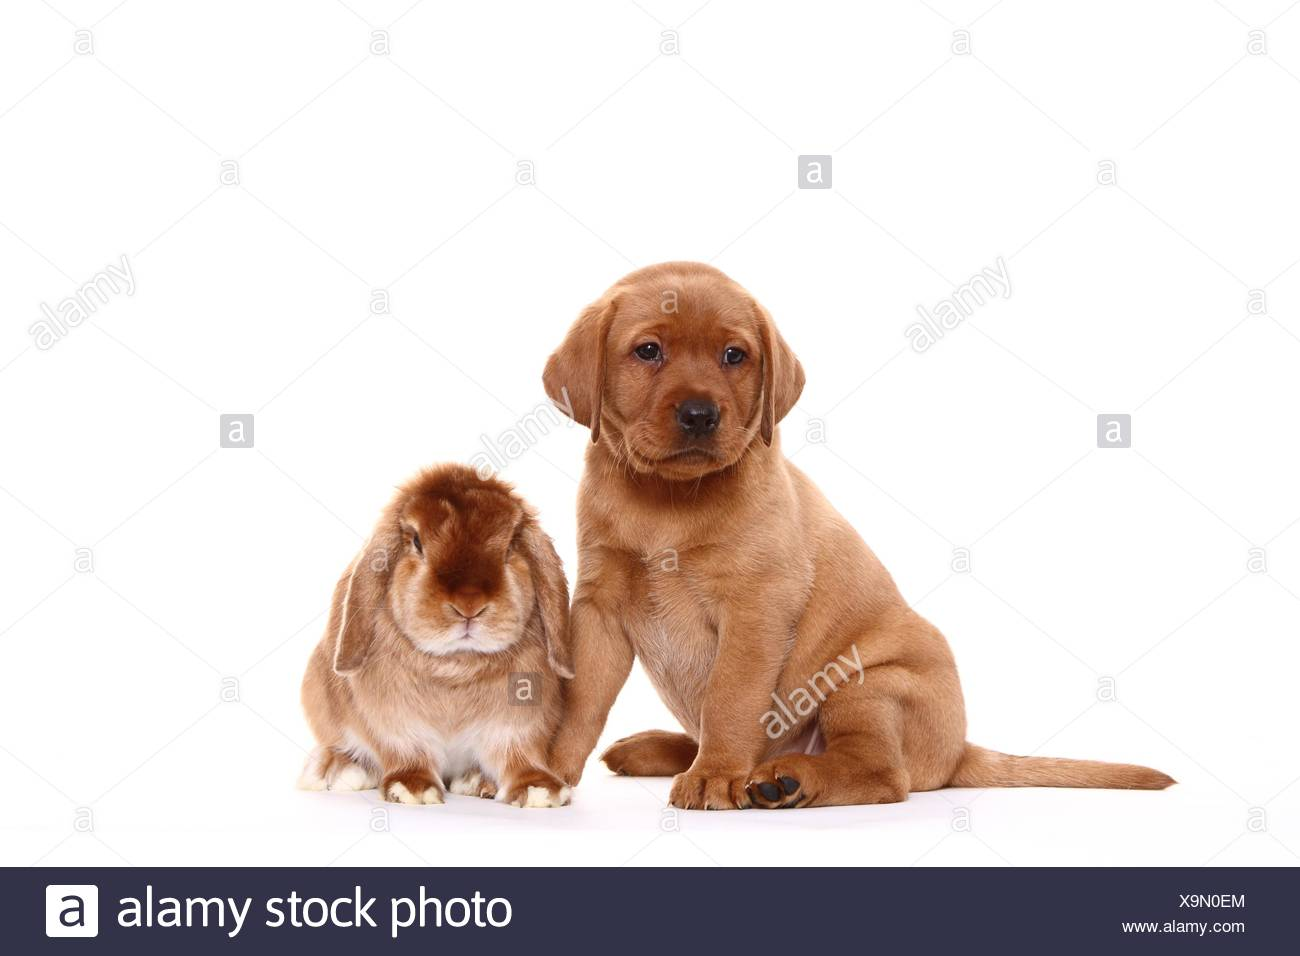 puppy and rabbit - Stock Image